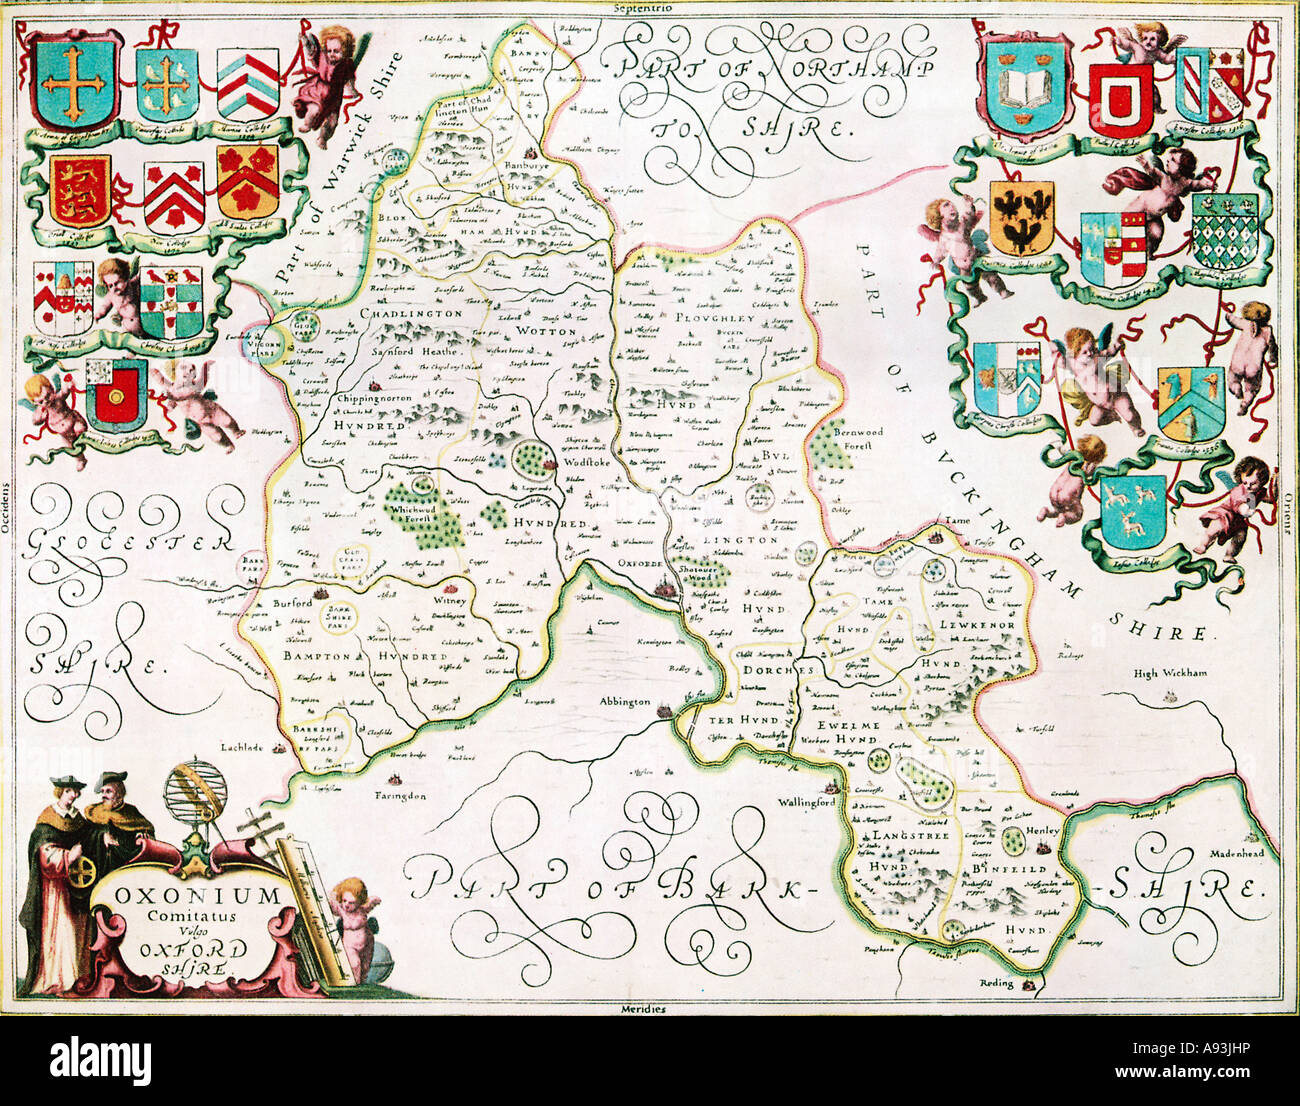 Oxfordshire Jansson s Atlas 1658 the map of the county from the Novus Atlas with the arms of the University colleges - Stock Image